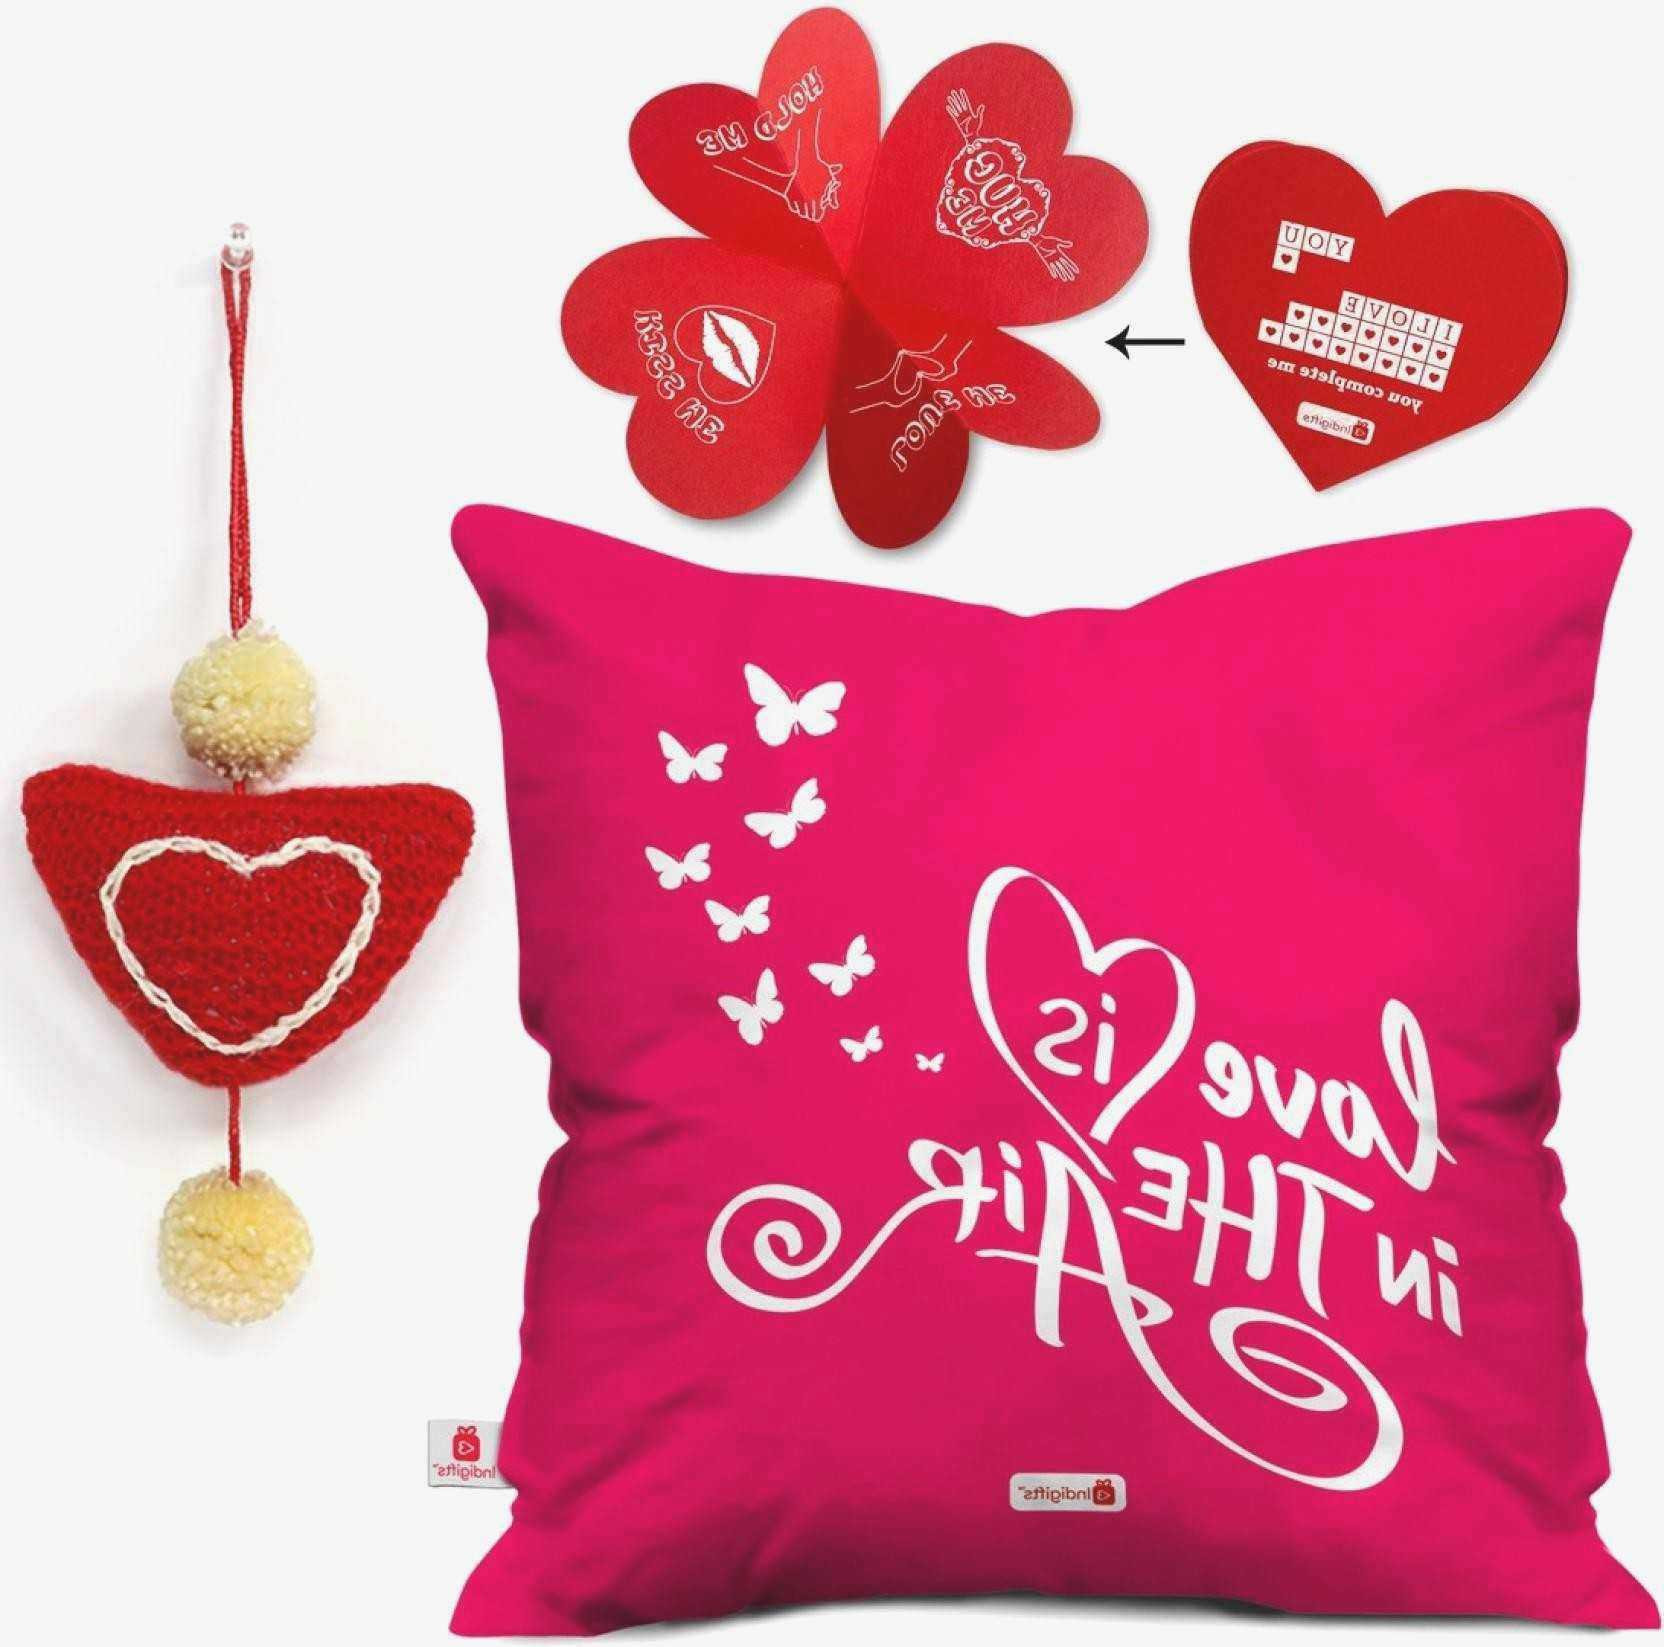 love bird vase of best of great wedding gifts wedding bridal with regard to cool wedding gift ideas inspirational pillows ideas heart pillow new indi ts love gift 0d 0cm062